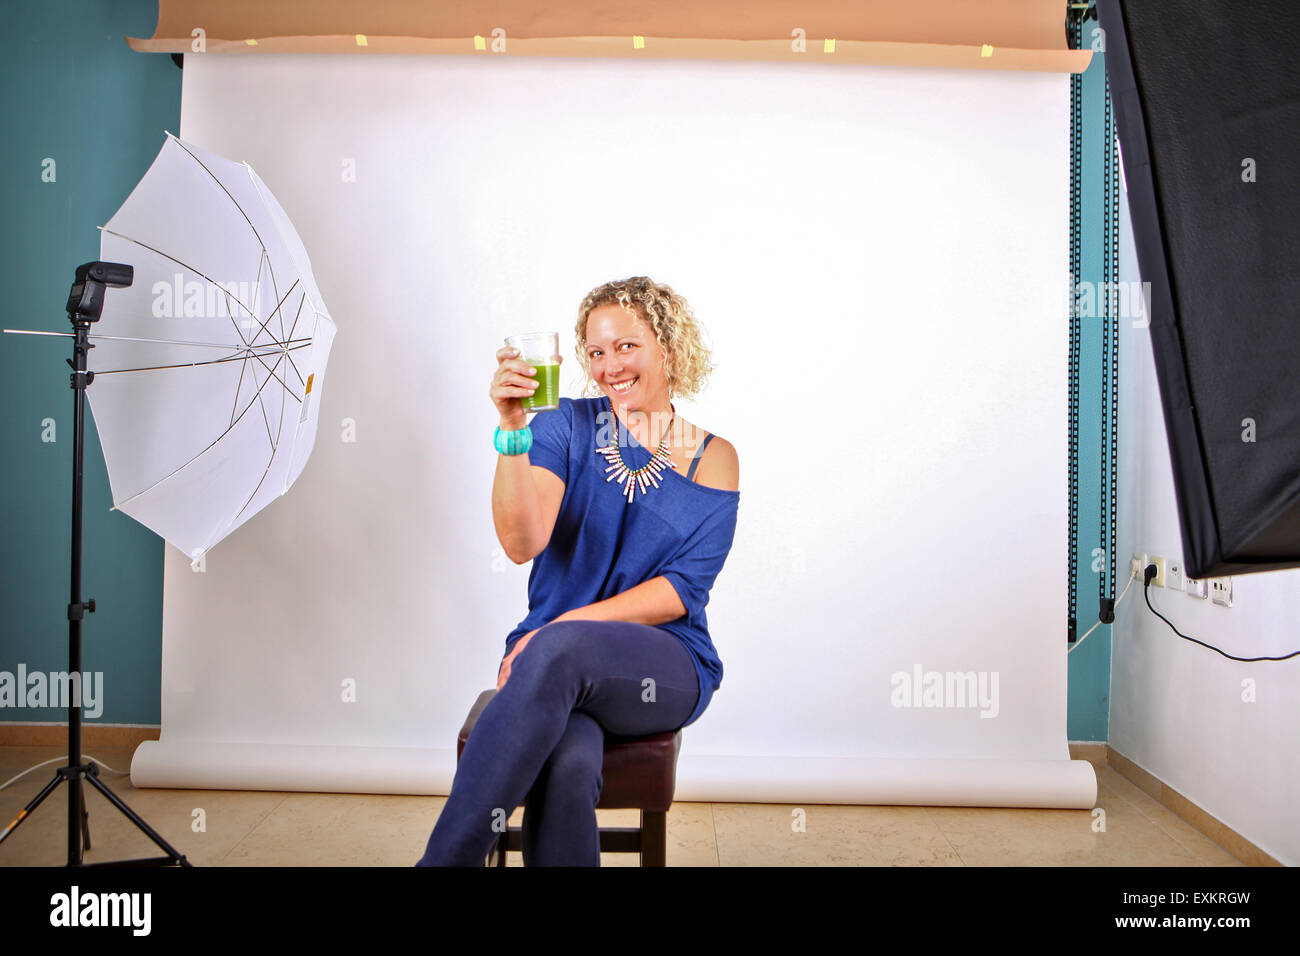 Model in photography studio drinking wheatgrass on the set - Stock Image